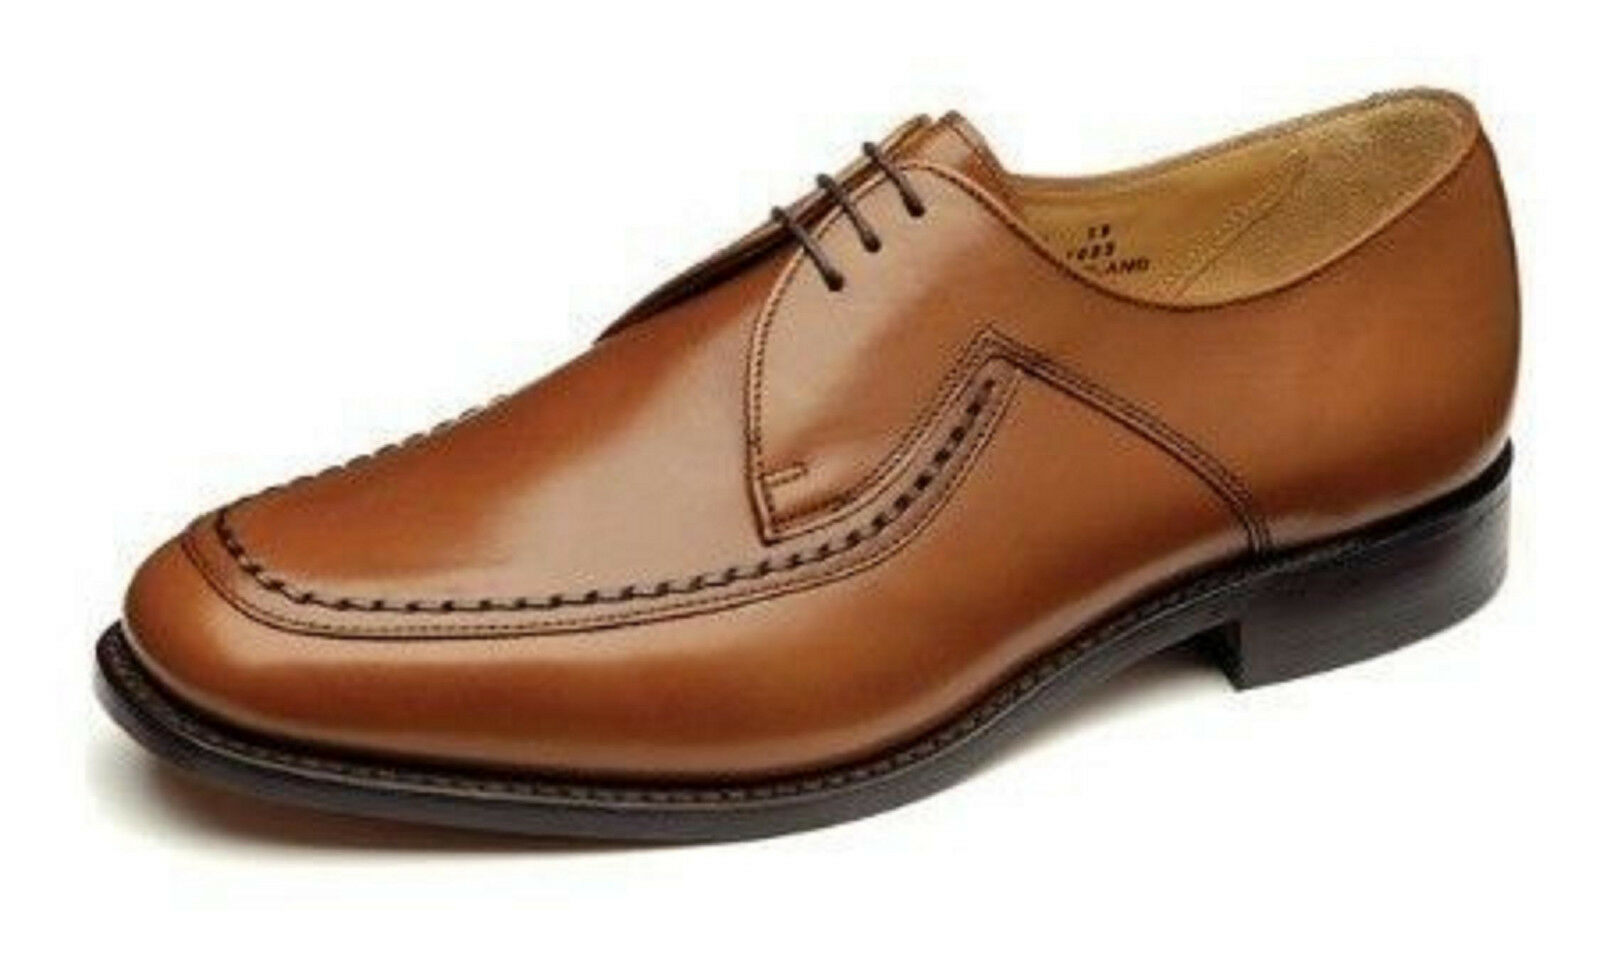 Loake Fontwell Gents Brown Dress shoes